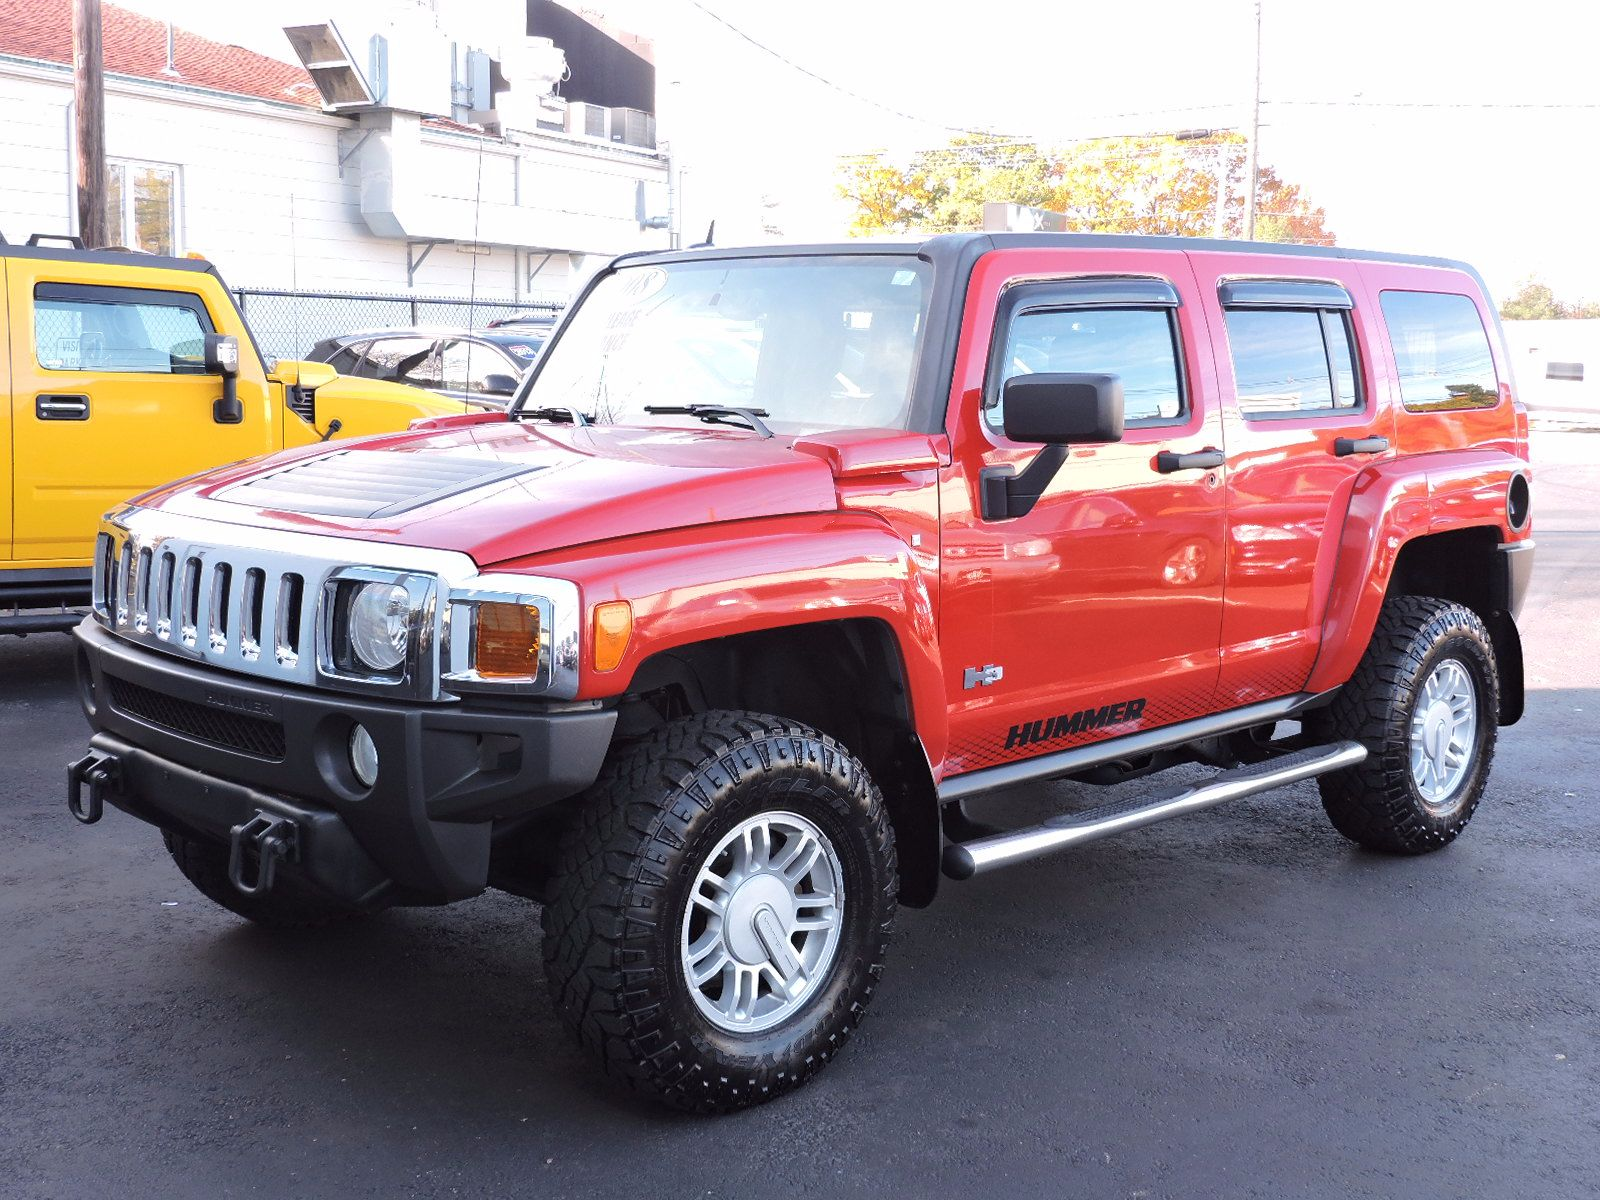 s of a Used 2008 HUMMER H3 SUV at Auto House USA Saugus